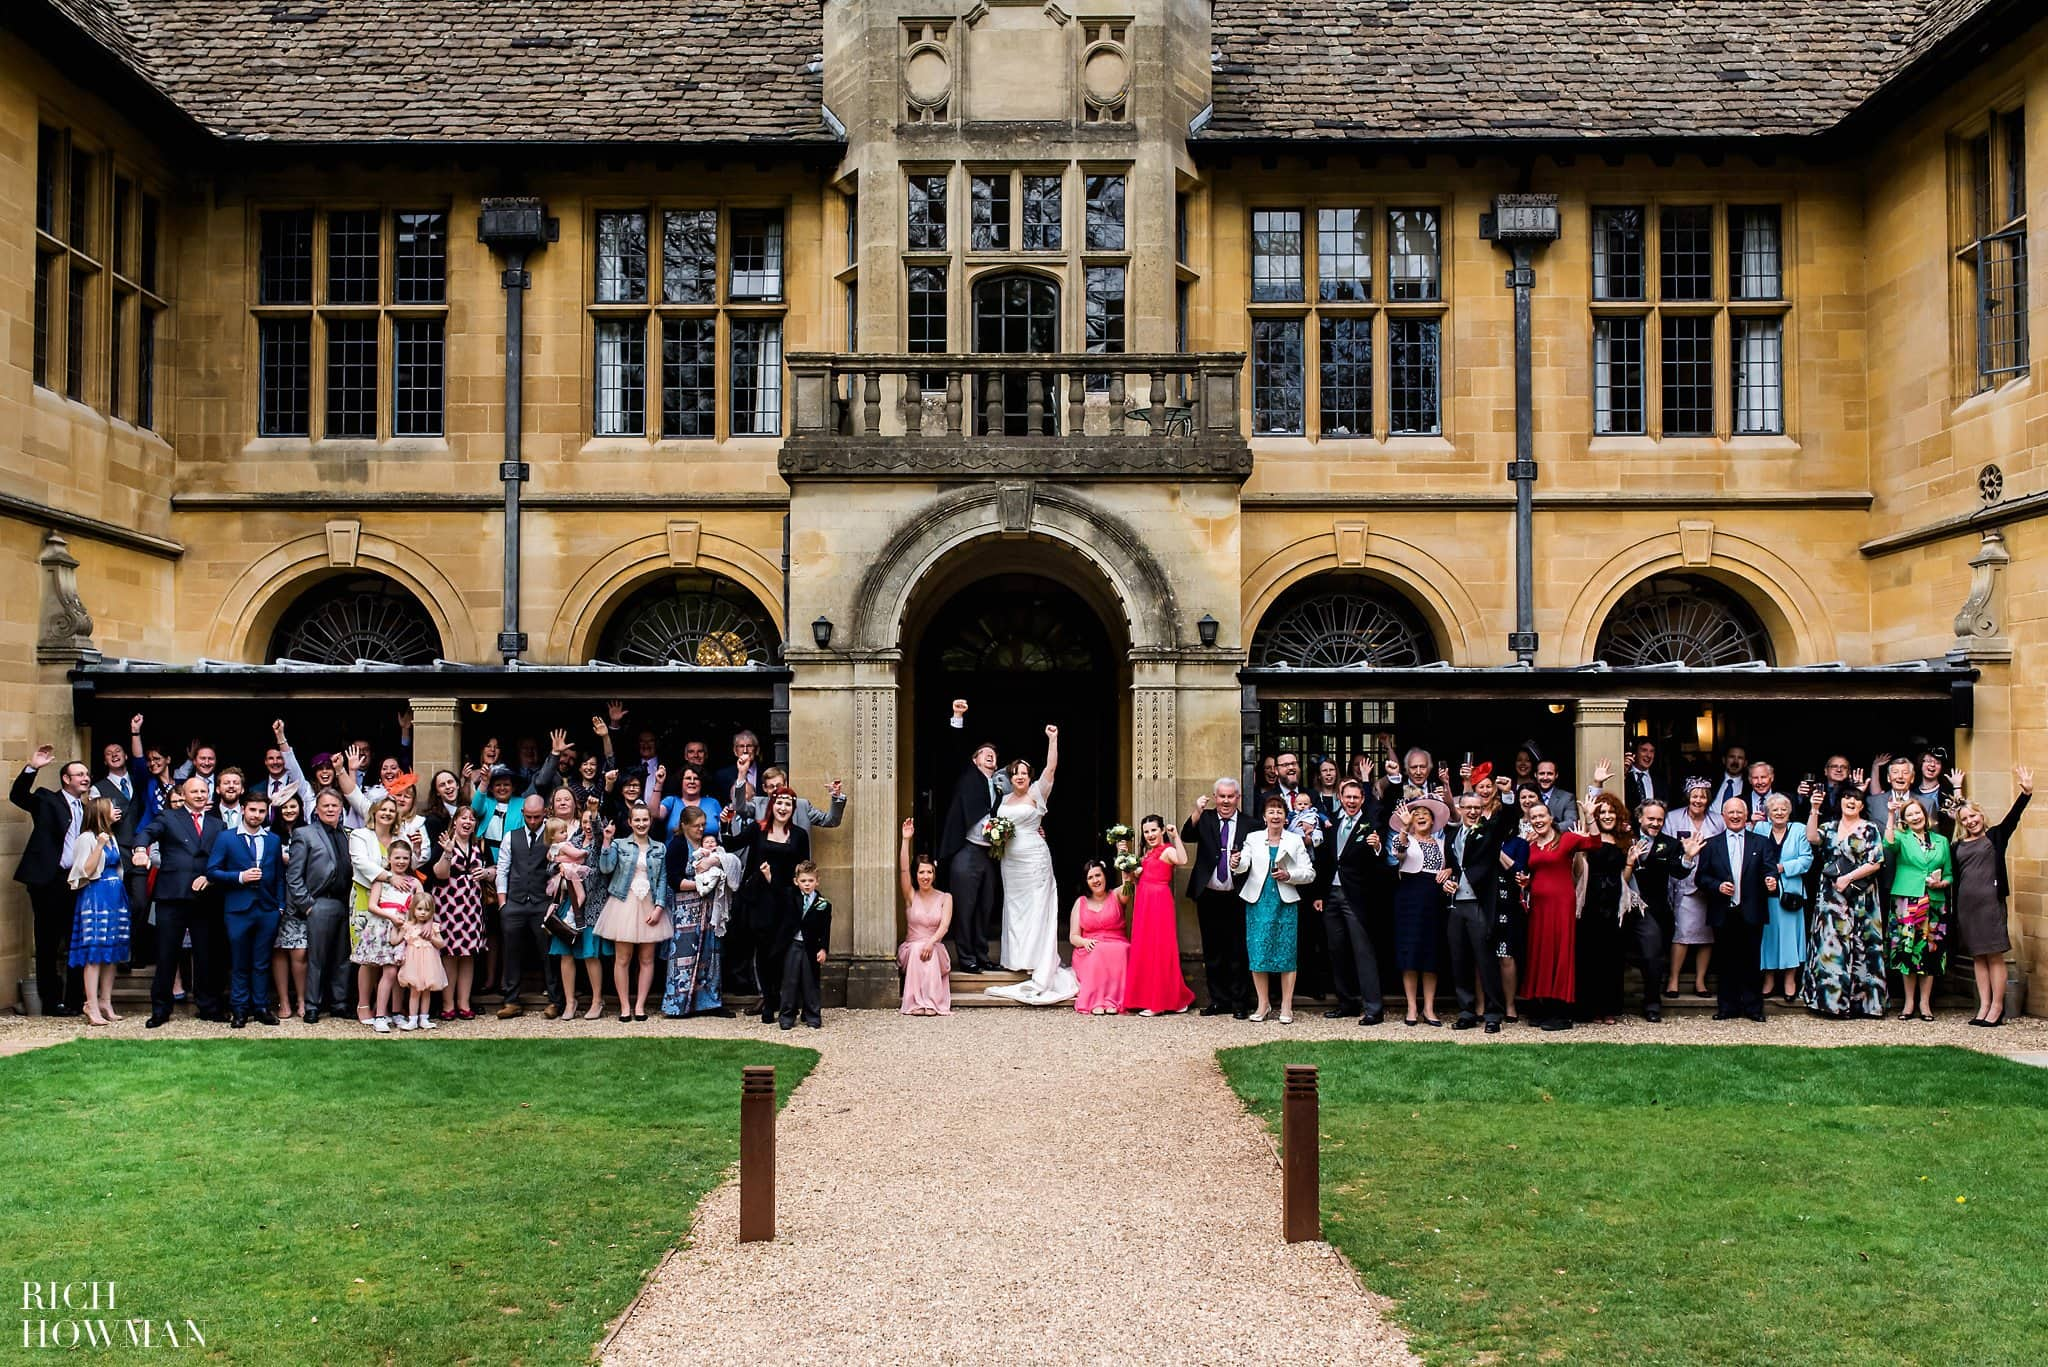 Coombe Lodge Wedding Group Portrait photograph